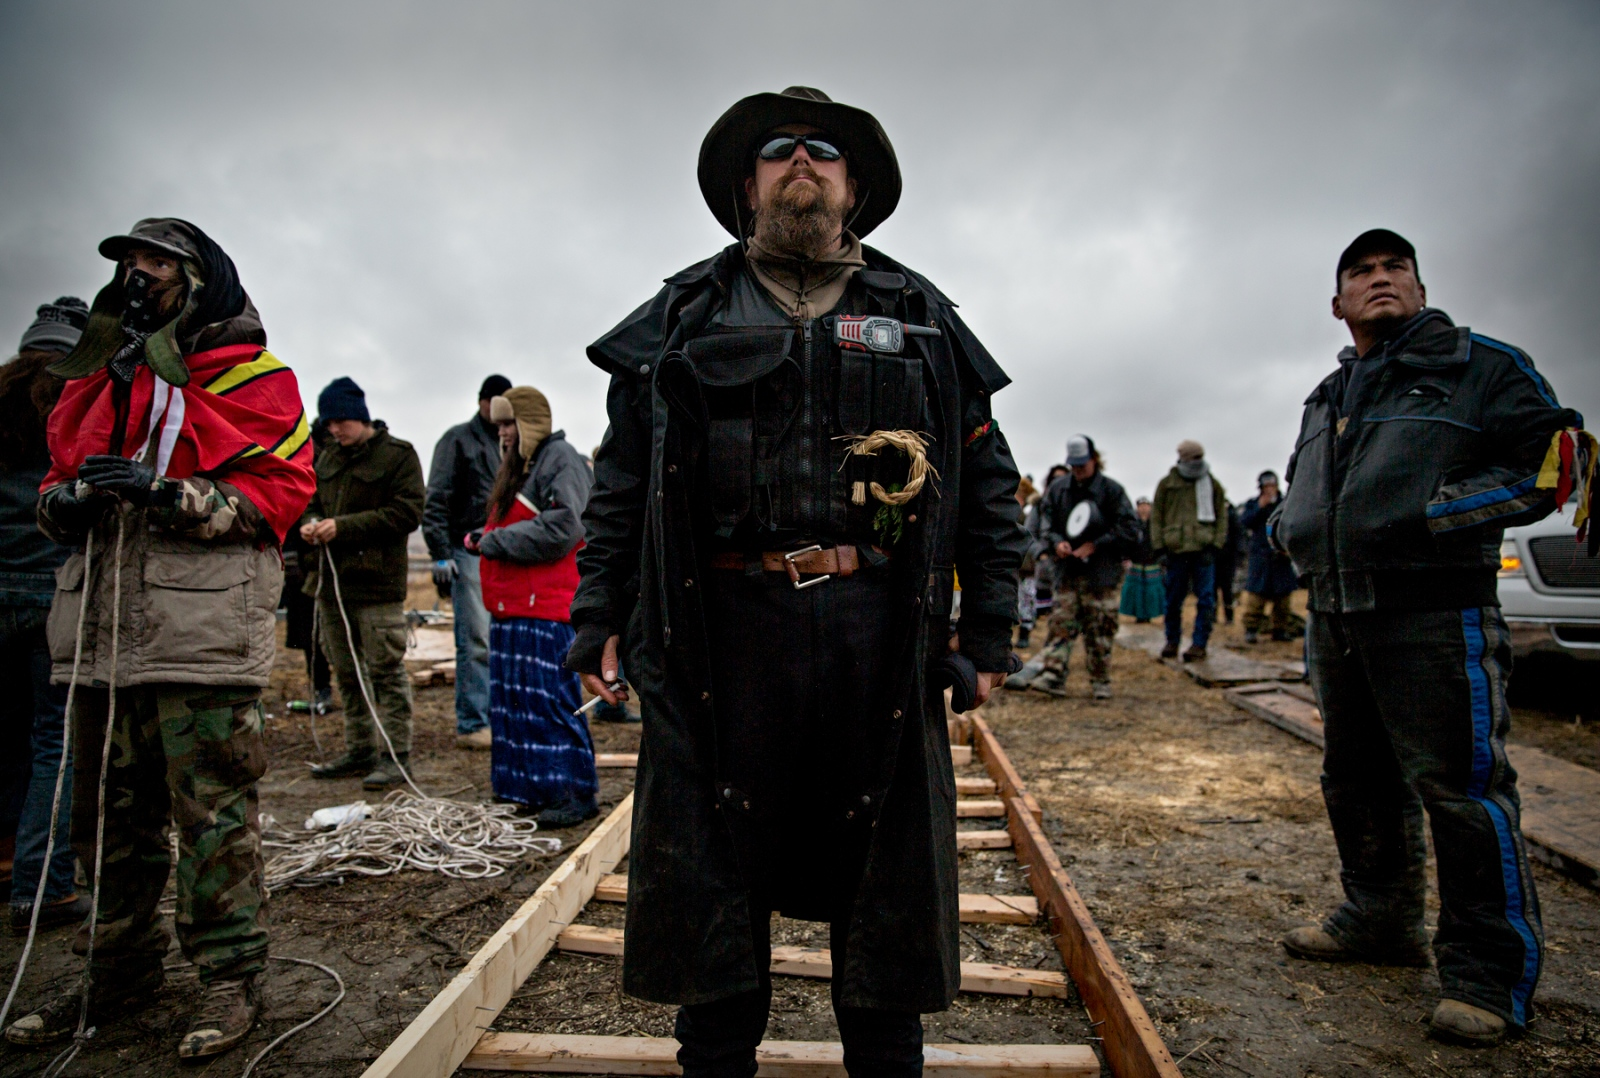 "Adoneus Bishop of Elgon Washington, has been in the Camp for 10 weeks and is member of the Oceti Sakowin Group. He says: ""I am not going anywhere."" The Common Man's Society of the Oceti Sakowin Camp at Standing Rock, ND, is a group of men and women who Serve, Protect, And Tend to the well being of camp."